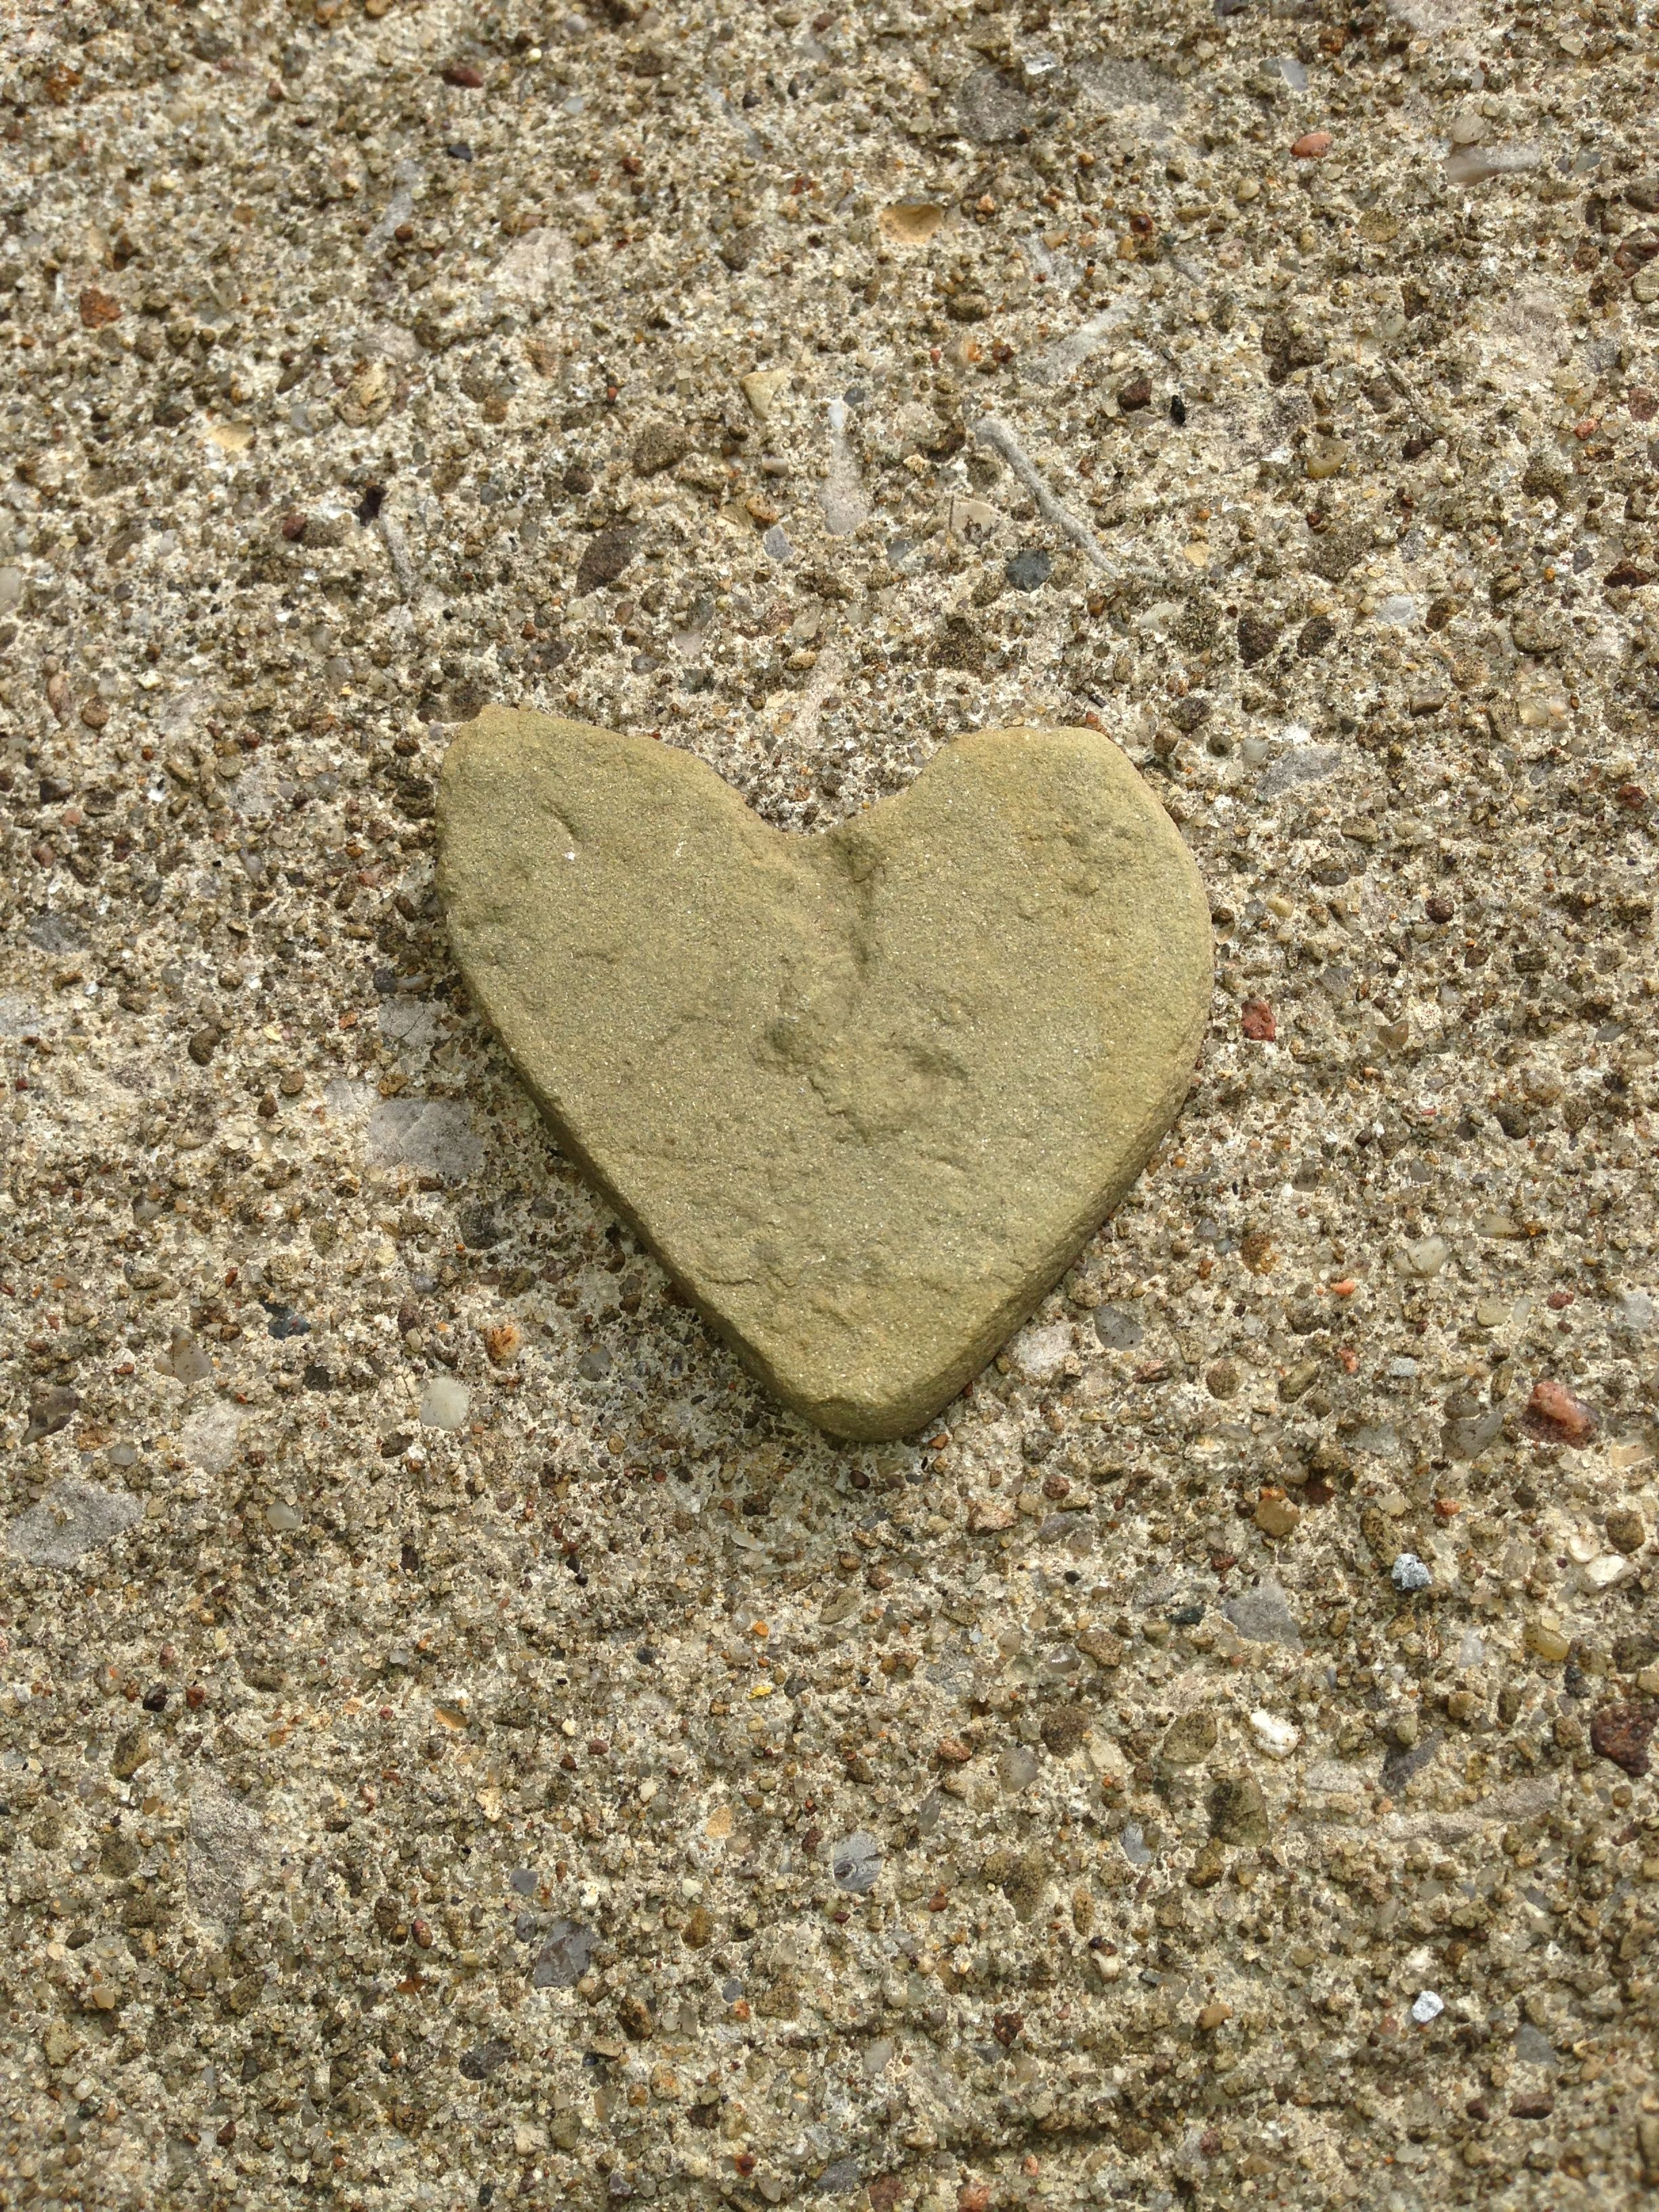 Found this amazing heart shaped rock in my work parking lot yesterday. It's a good sign my heart is in the right place!